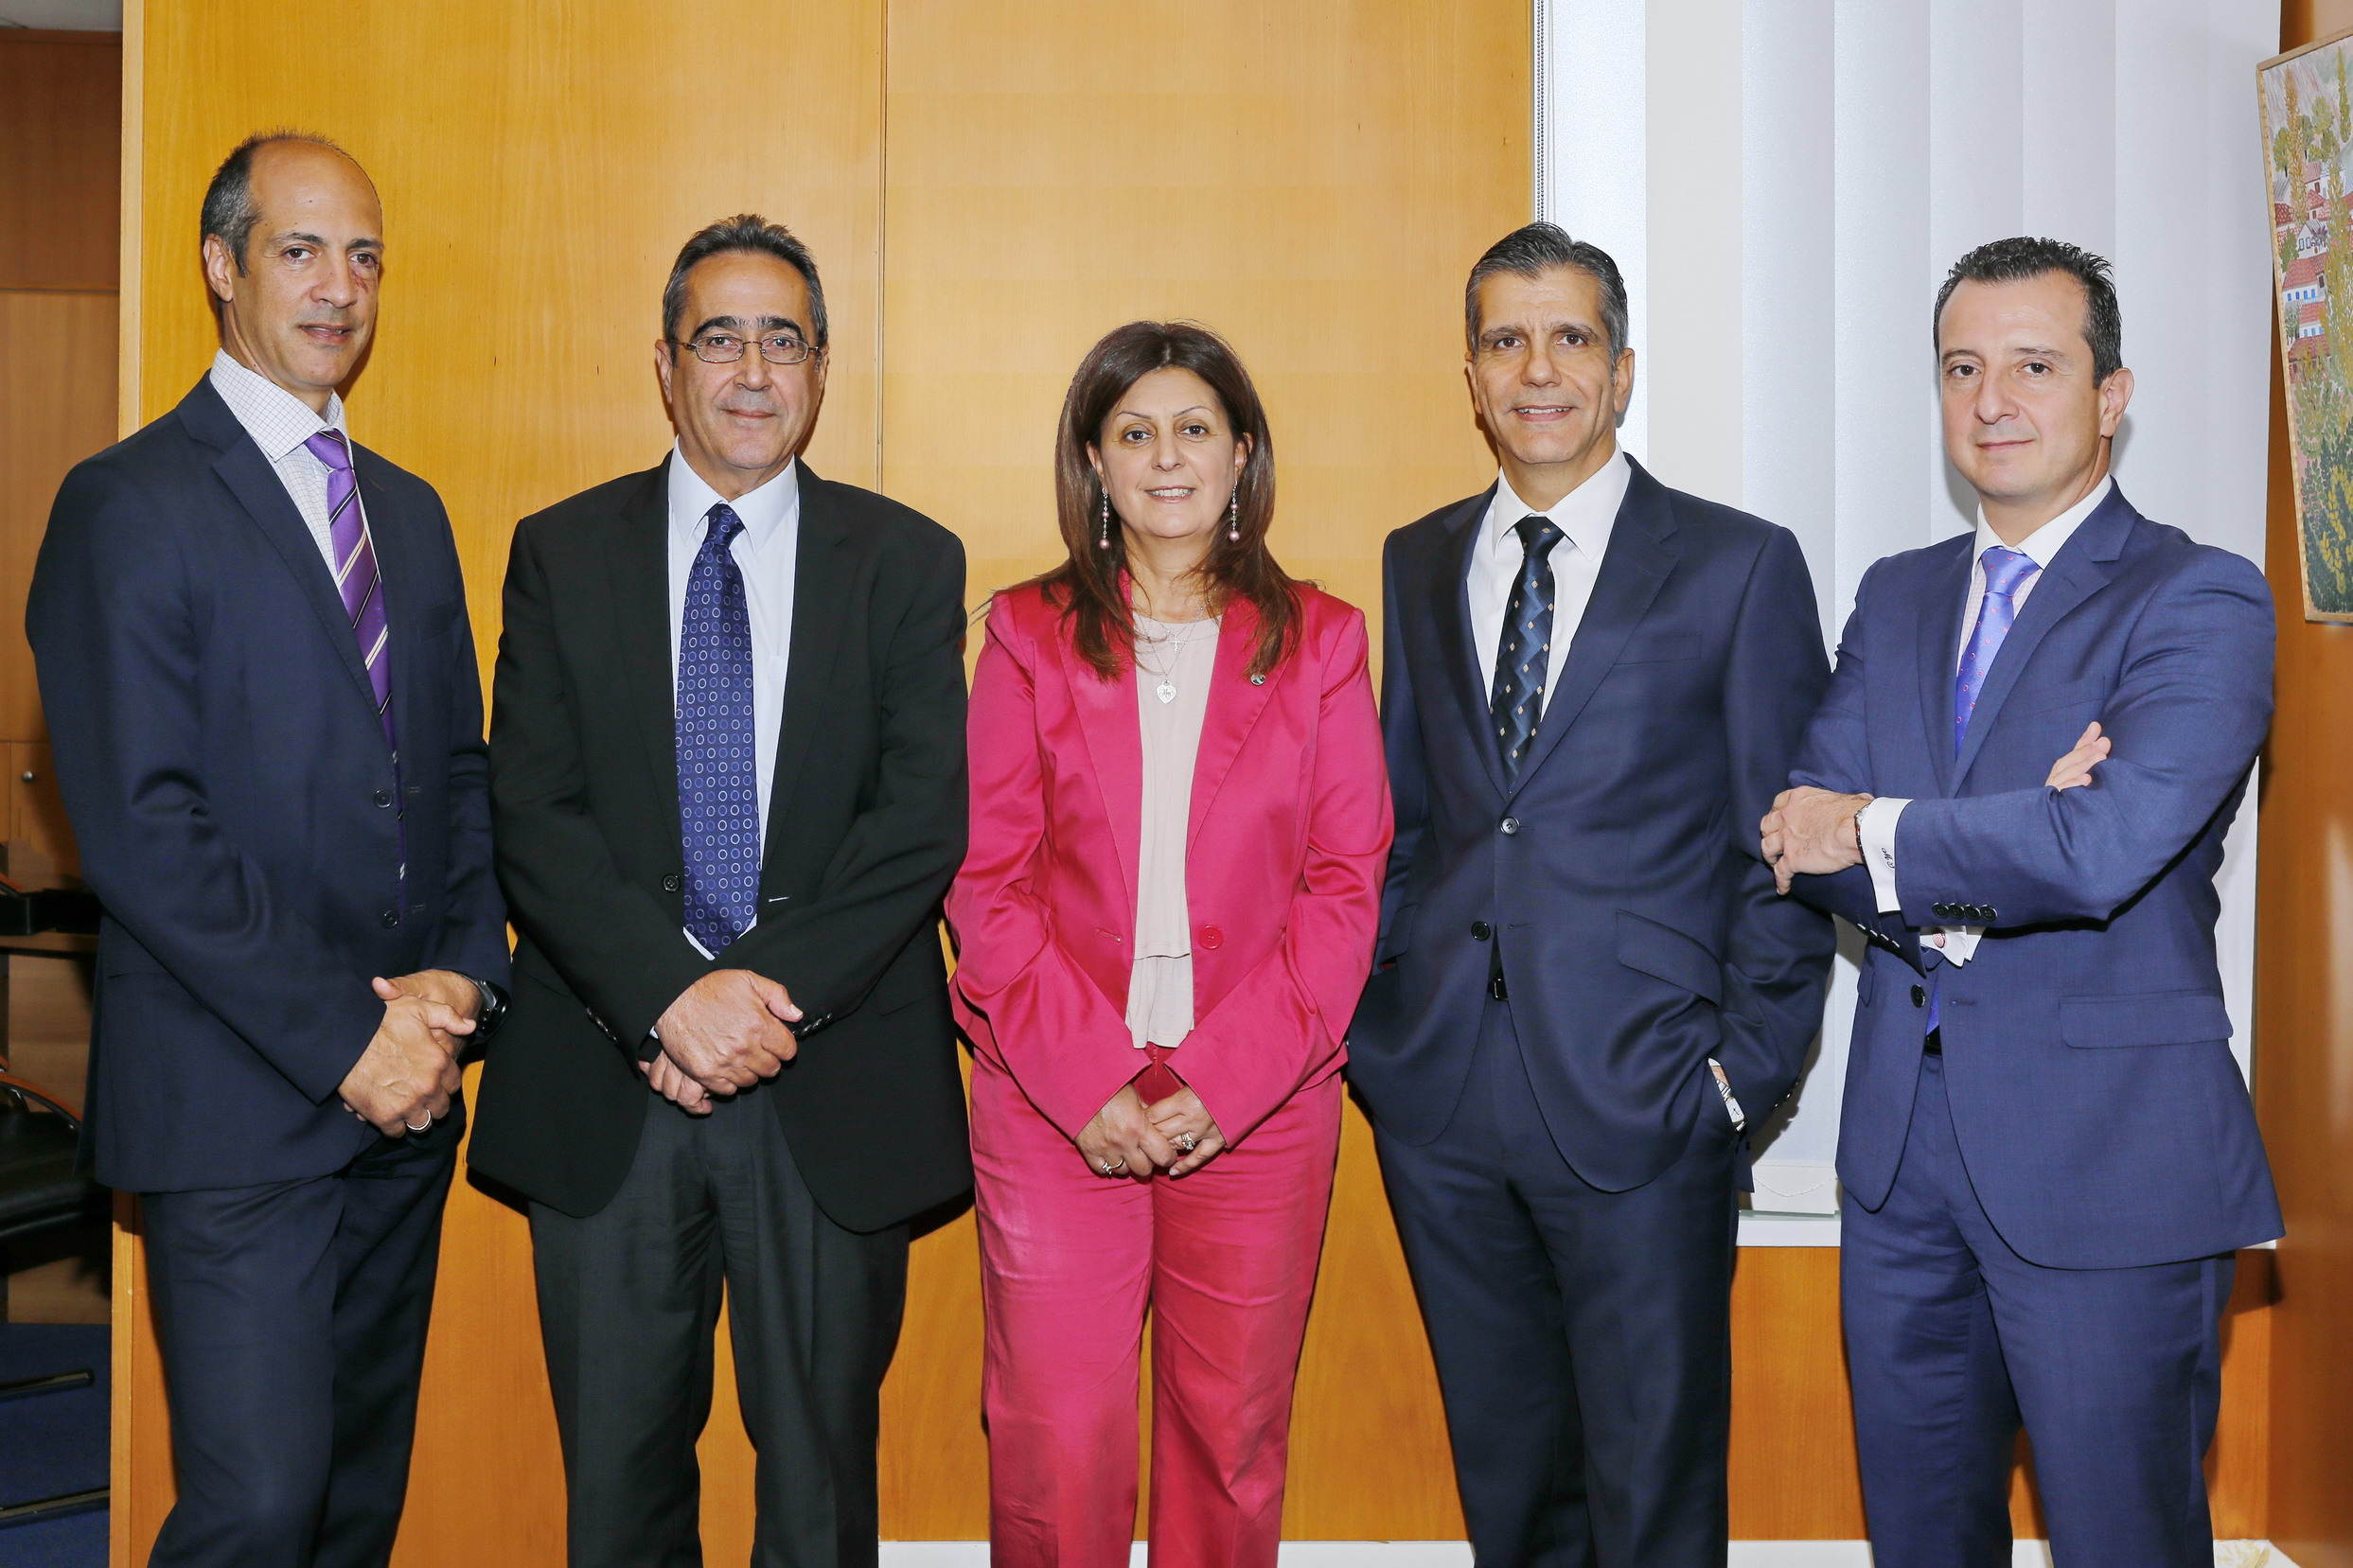 Cyprus Chapter Leaders. From left to right: Agis Taramides, George Rostantis, Dr. Maria Kambia-Kapardis, George Zornas, and Marios Skandalis